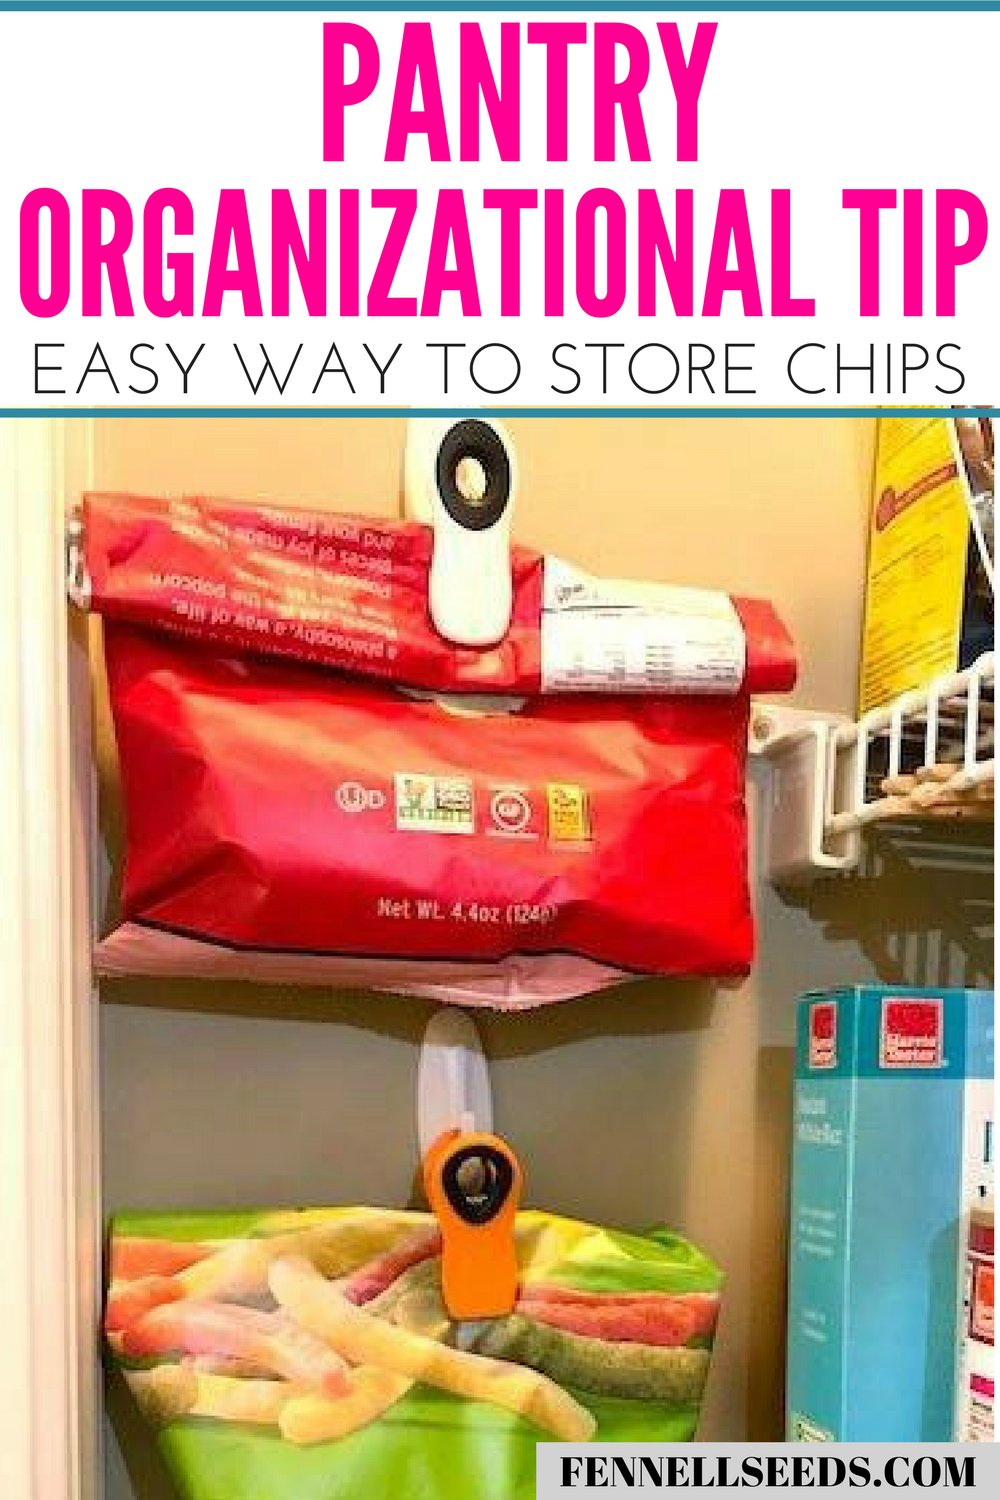 Pantry Organization   Bags of chips organization   Bags of Chips Storage   Pantry Ideas